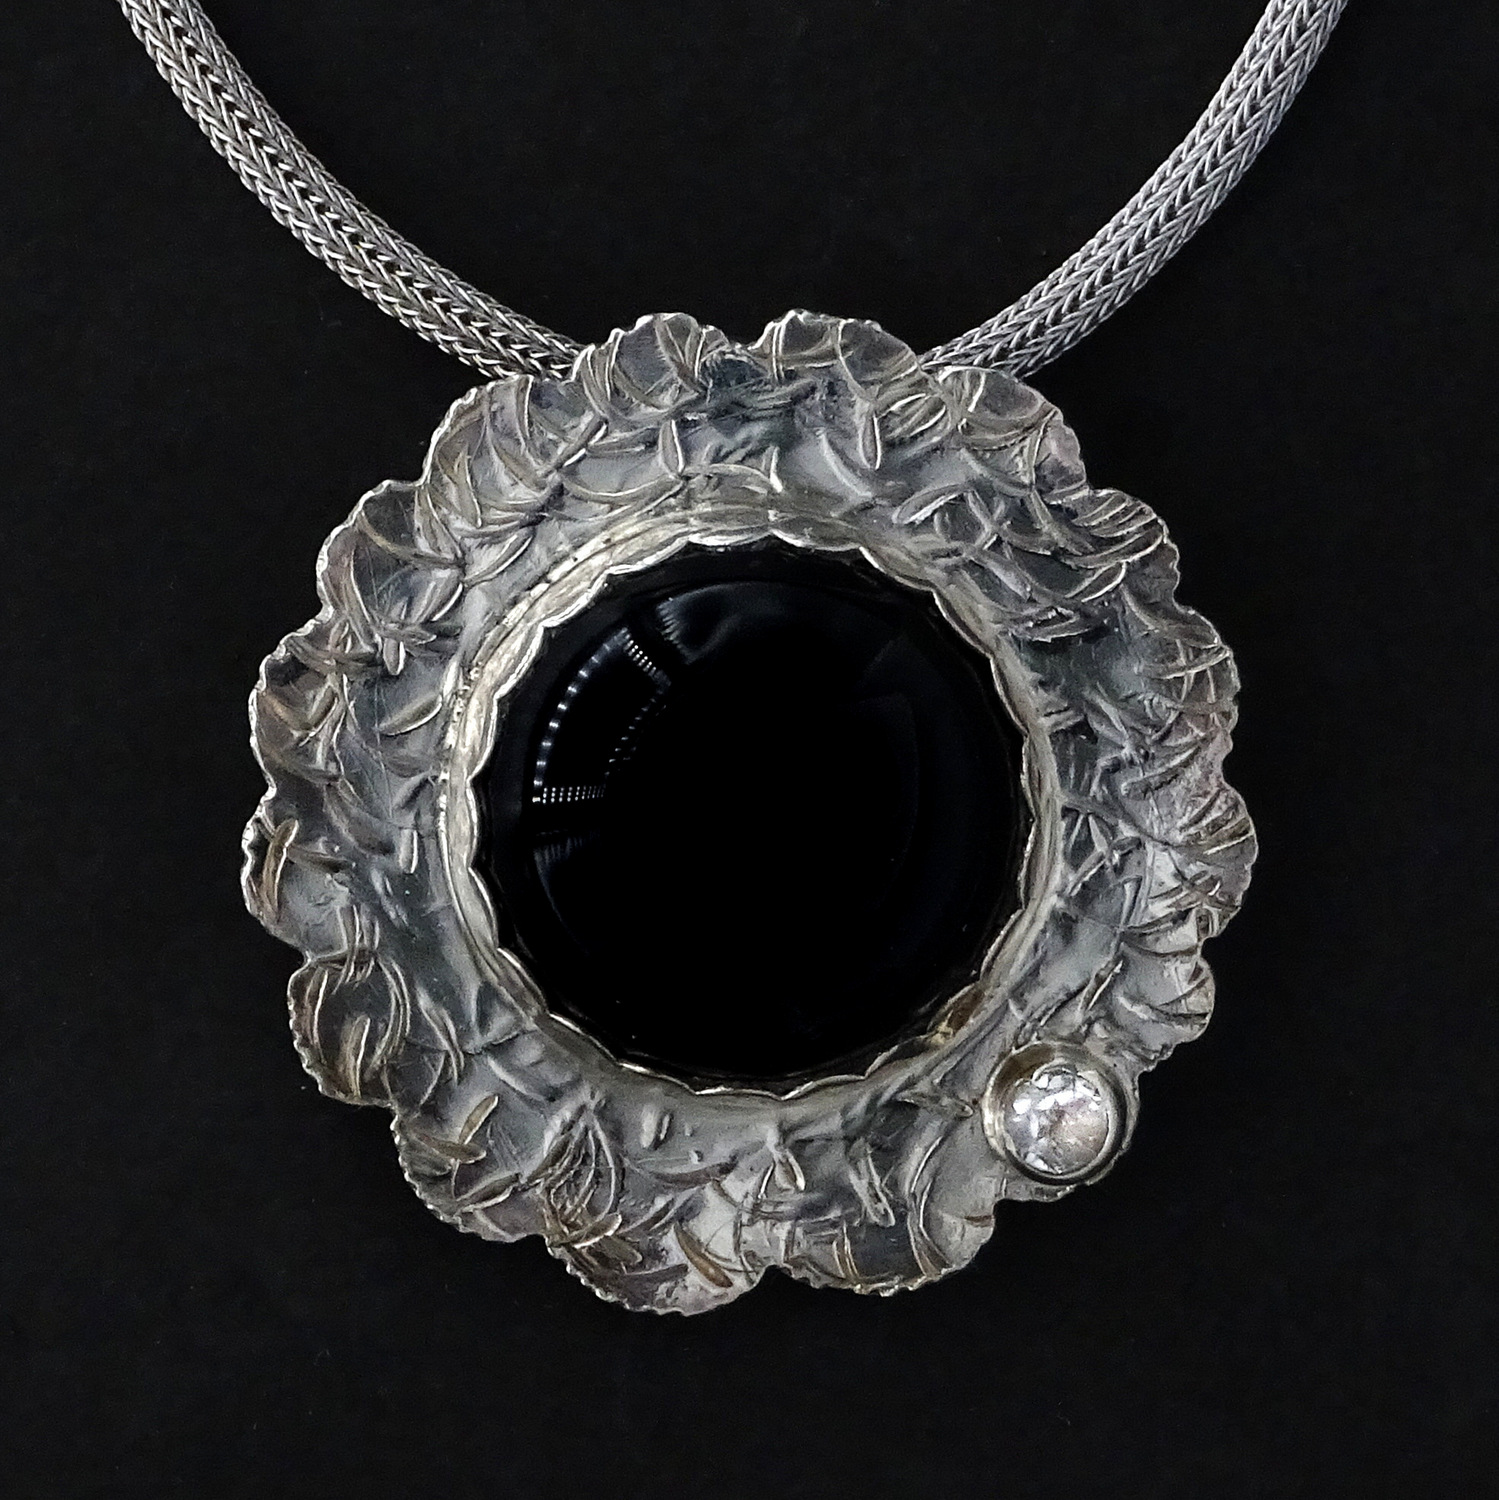 1-Pendant with Black Stone with Diamond Accent, Handcrafted Silver Necklace, Sylvia McCollum-003.JPG